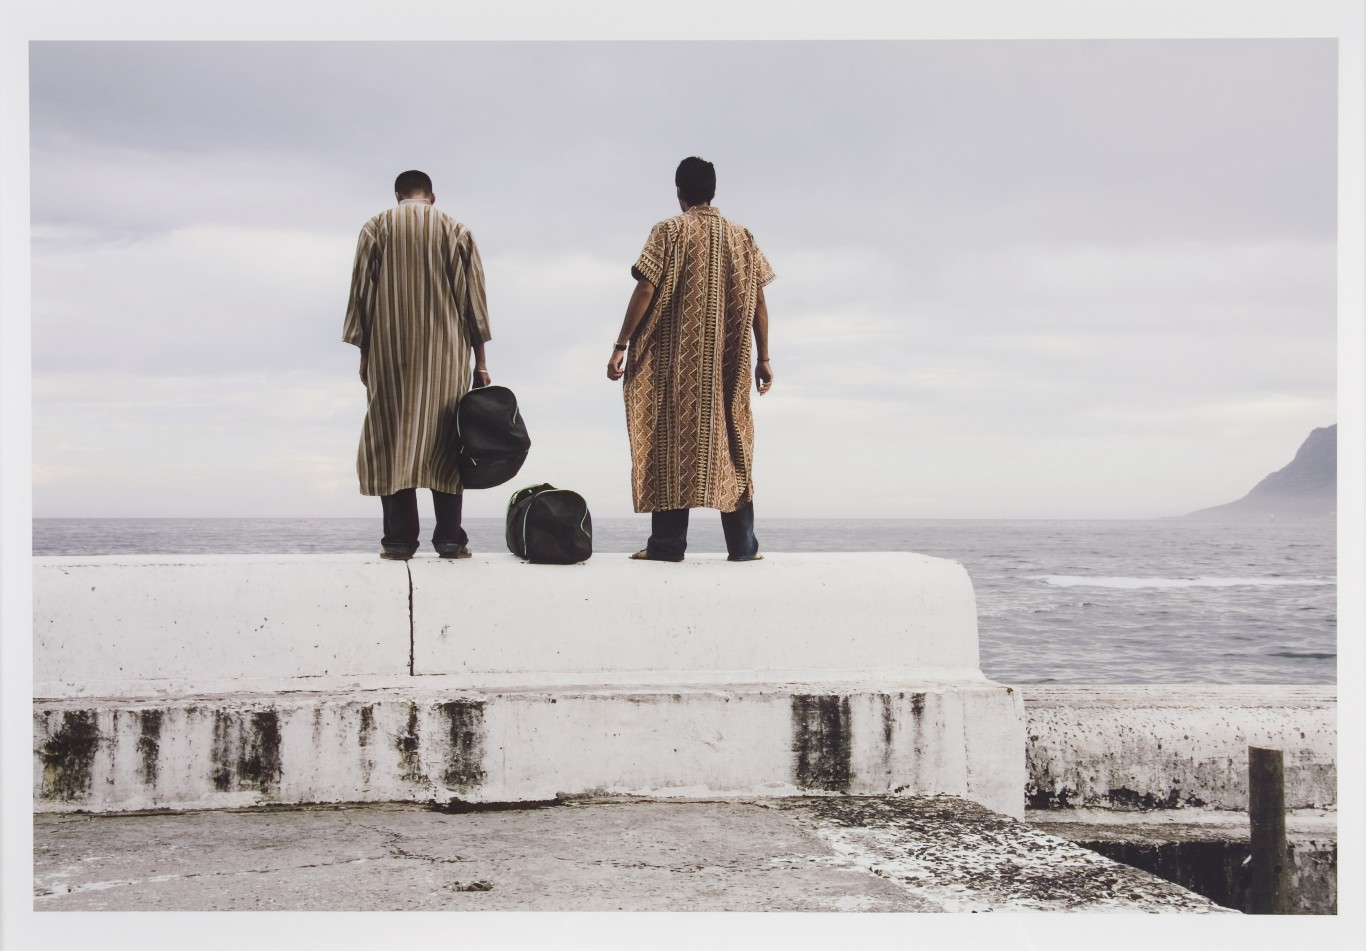 Hasan and Husain Essop, <i>Cape Town (South Africa) (Variation)</i>, 2009. Pigment print on cotton rag paper